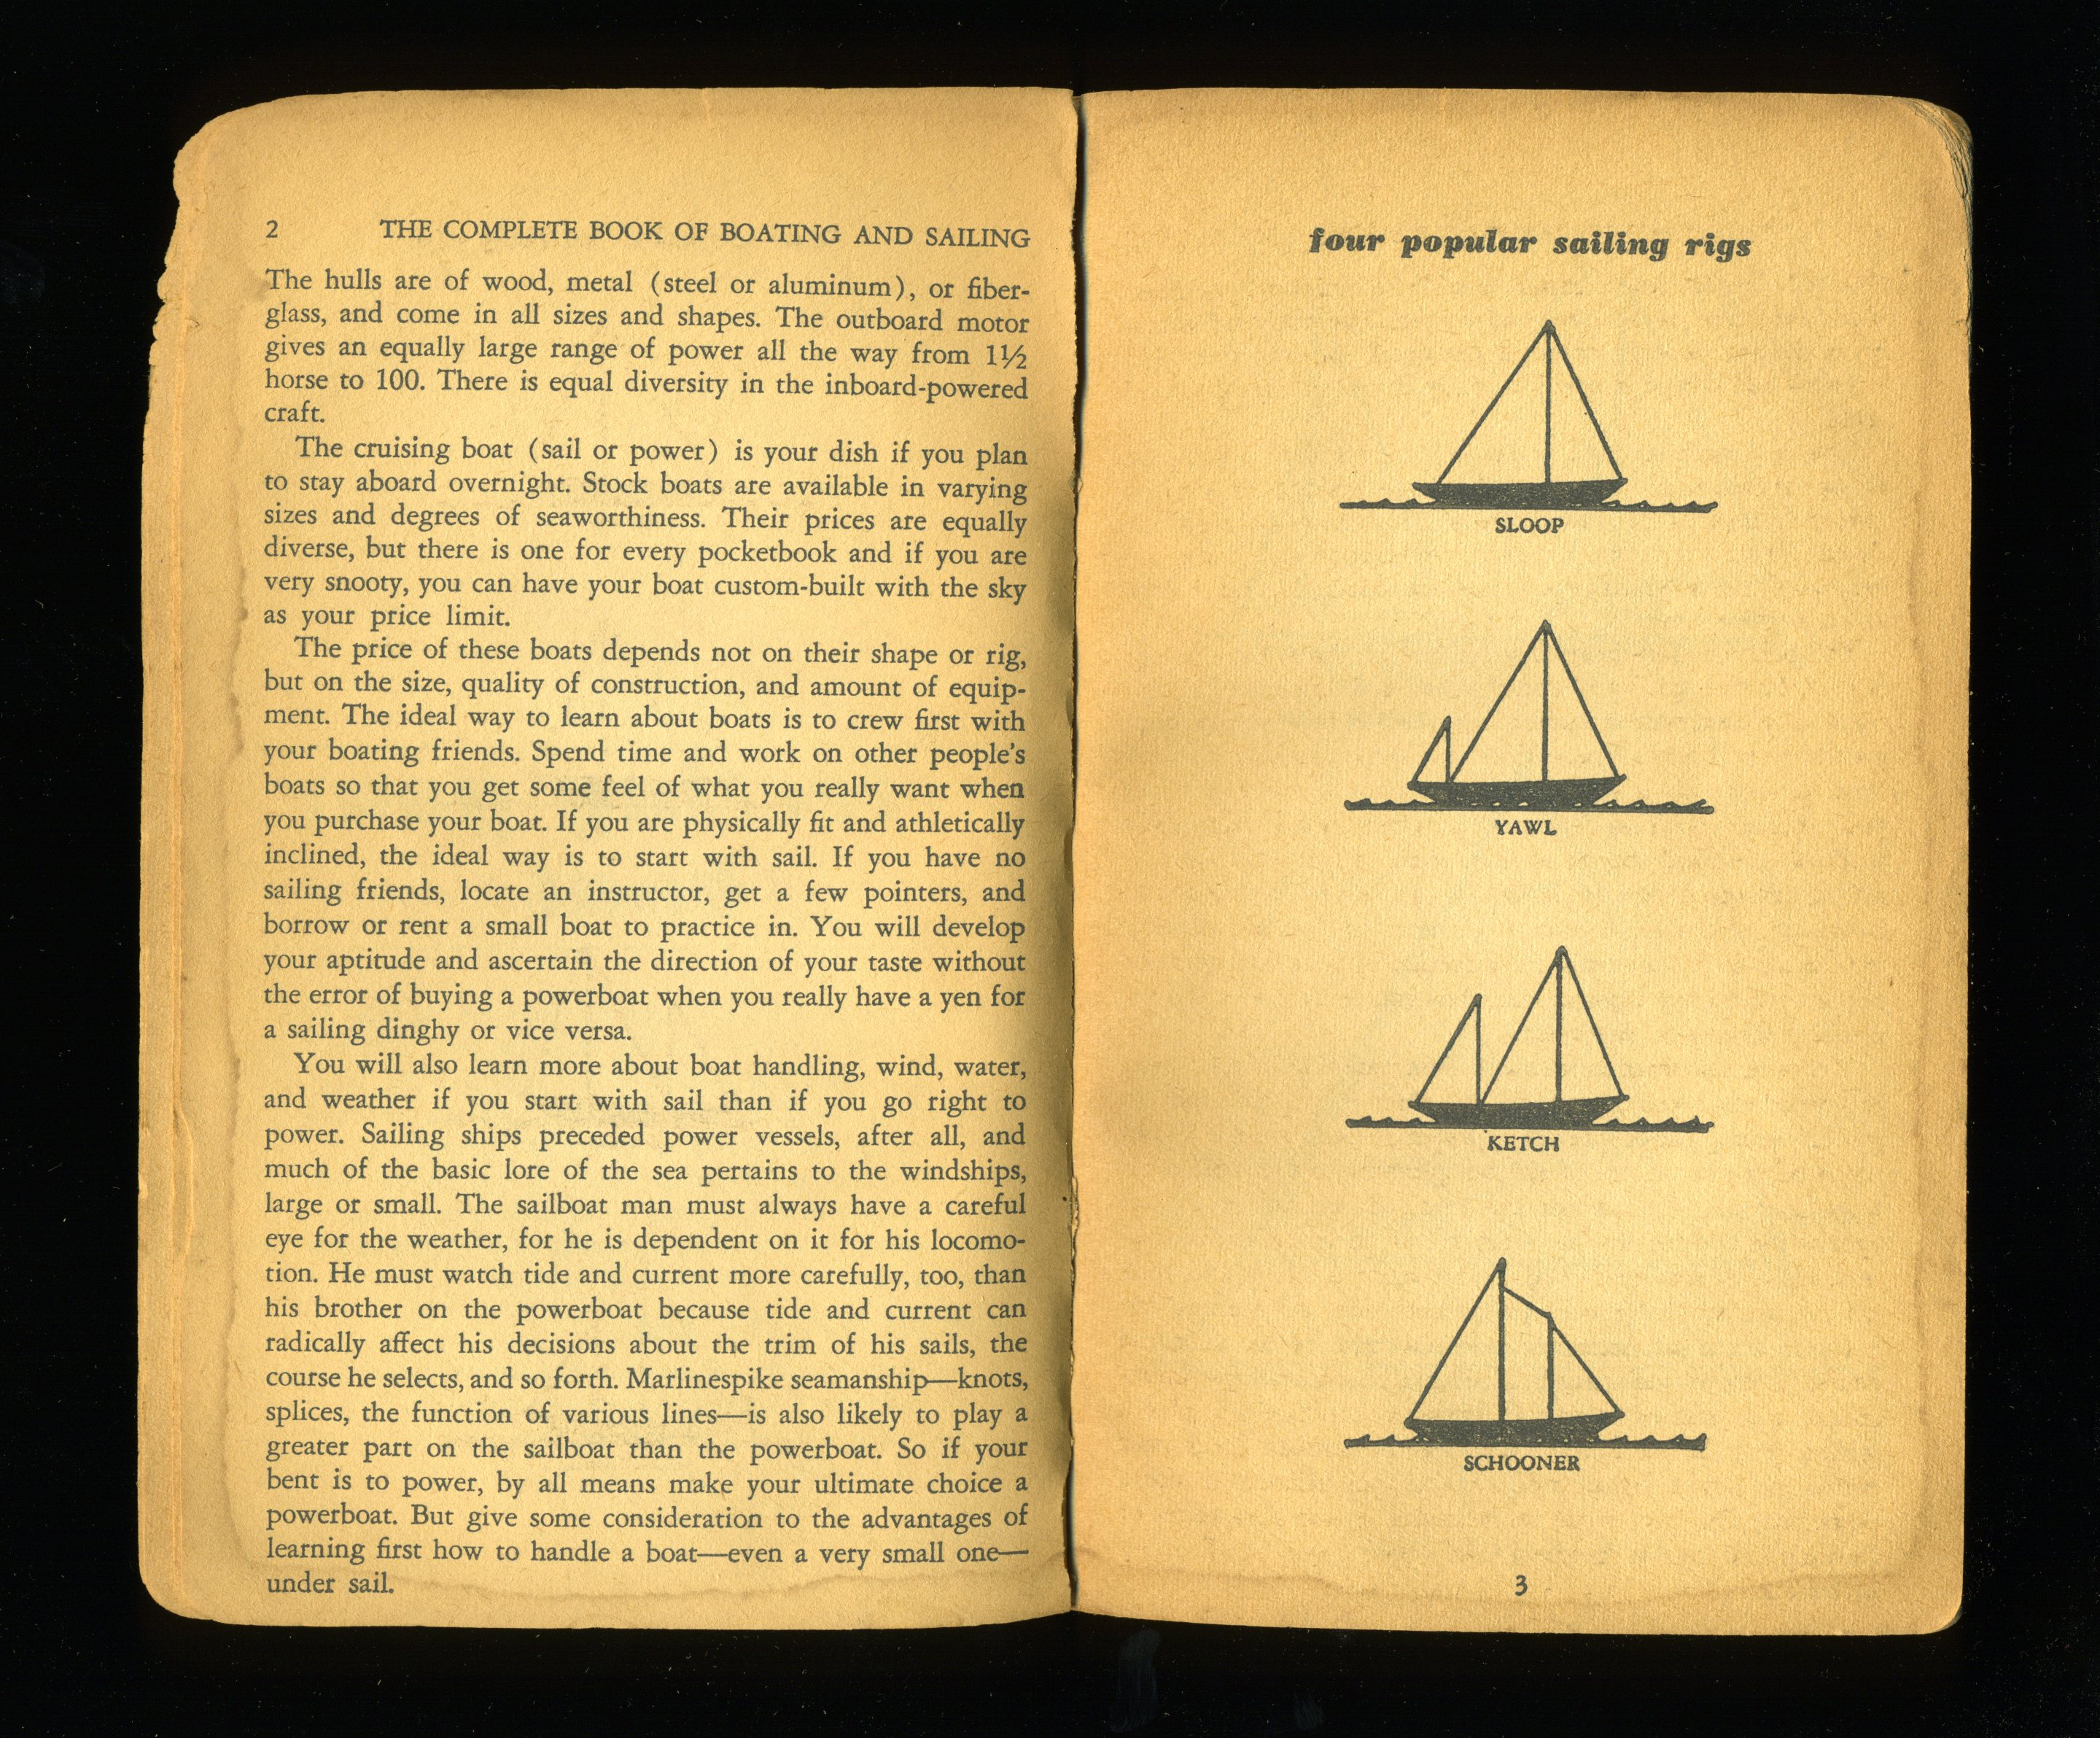 Vernacular Typography Complete Book of Boating